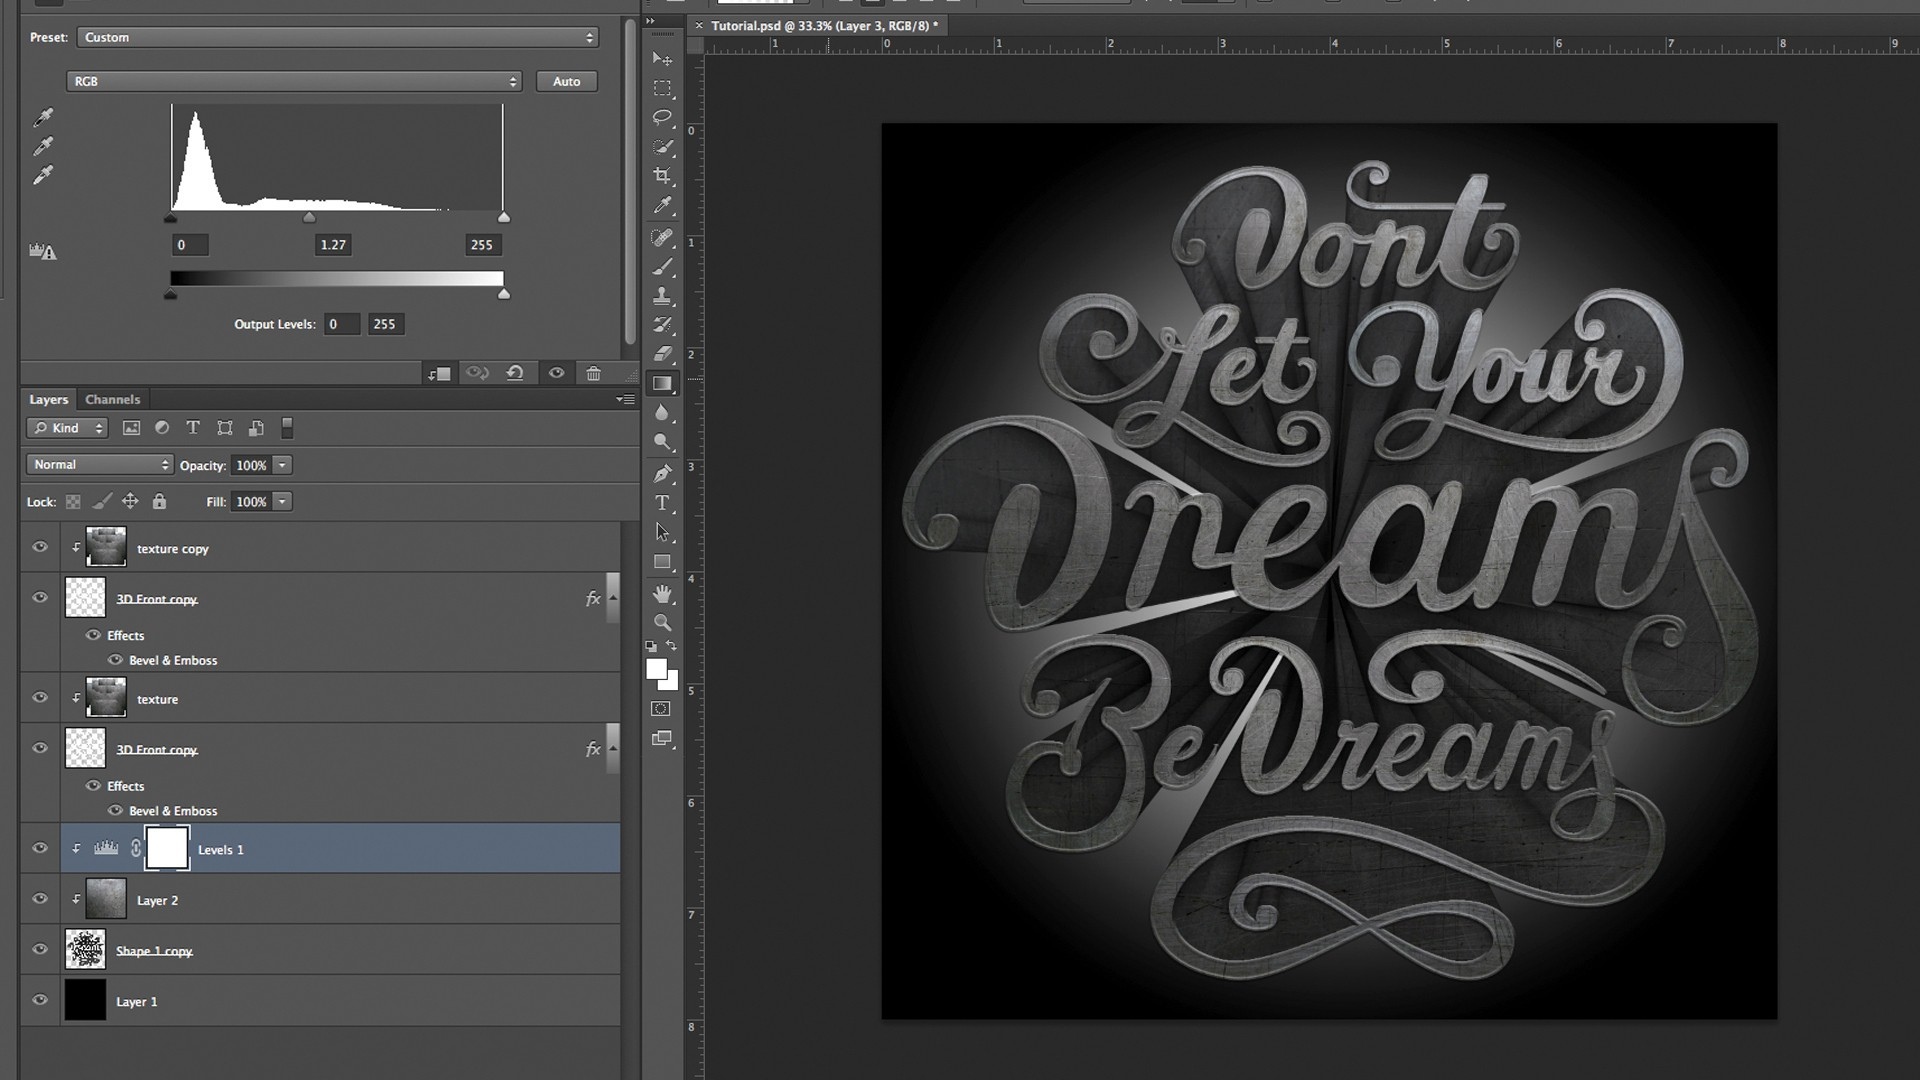 photoshop  u0026 maxon cinema 4d tutorial  learn the best ways to create 3d type